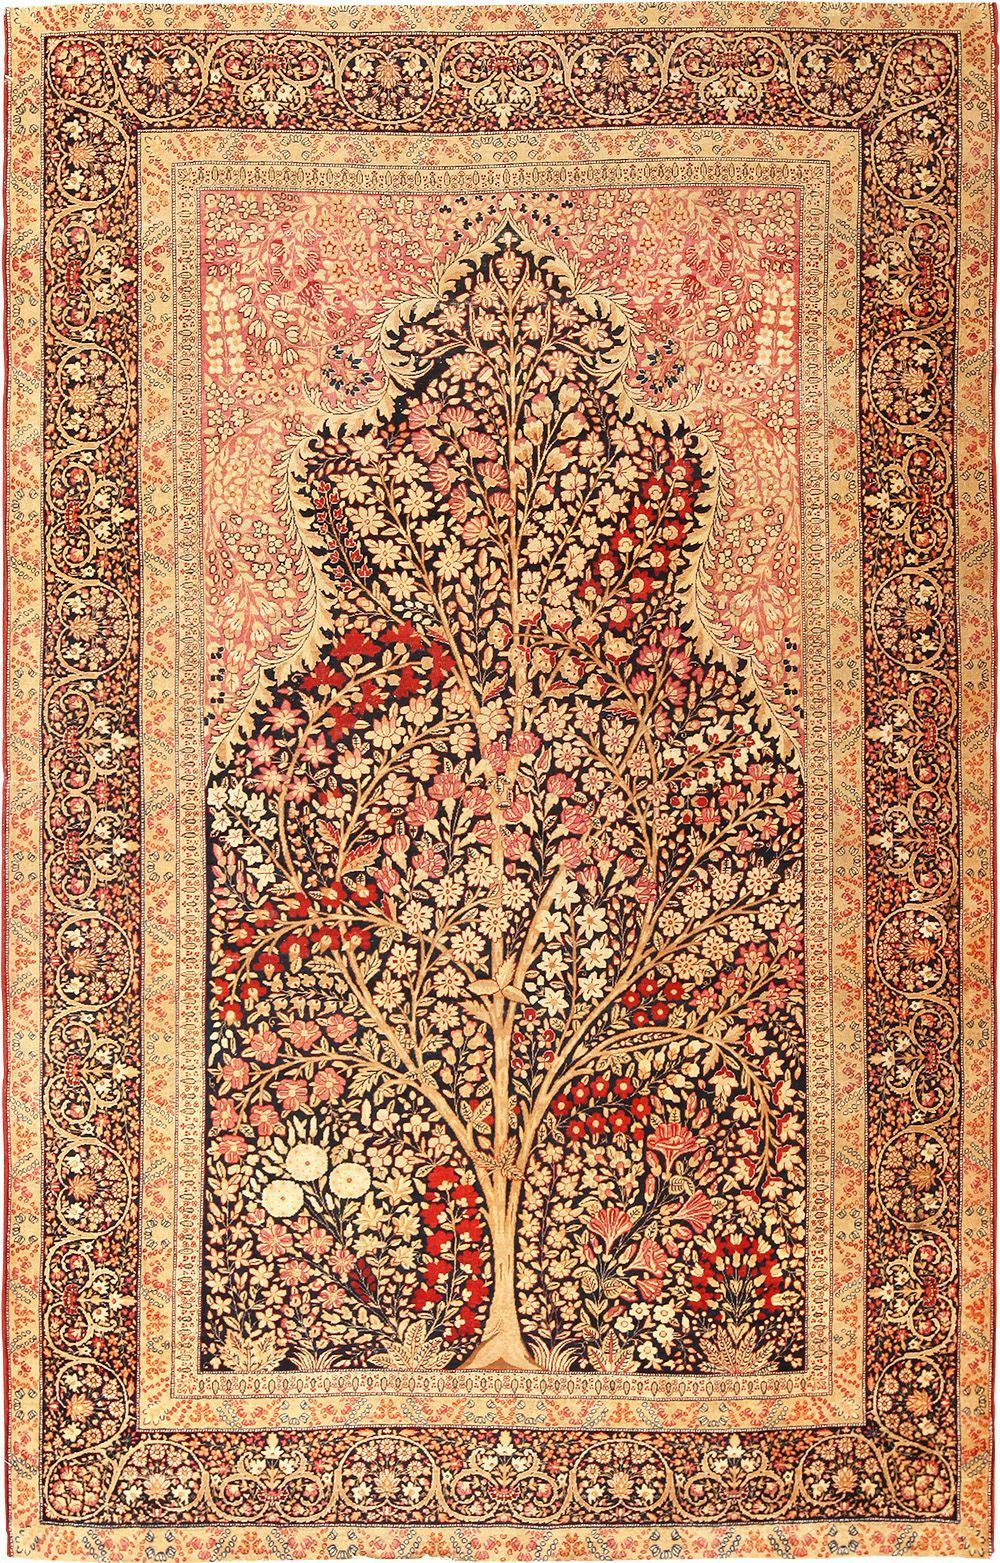 Tree Of Life Design Persian Kerman Rug 49168 By Nazmiyal